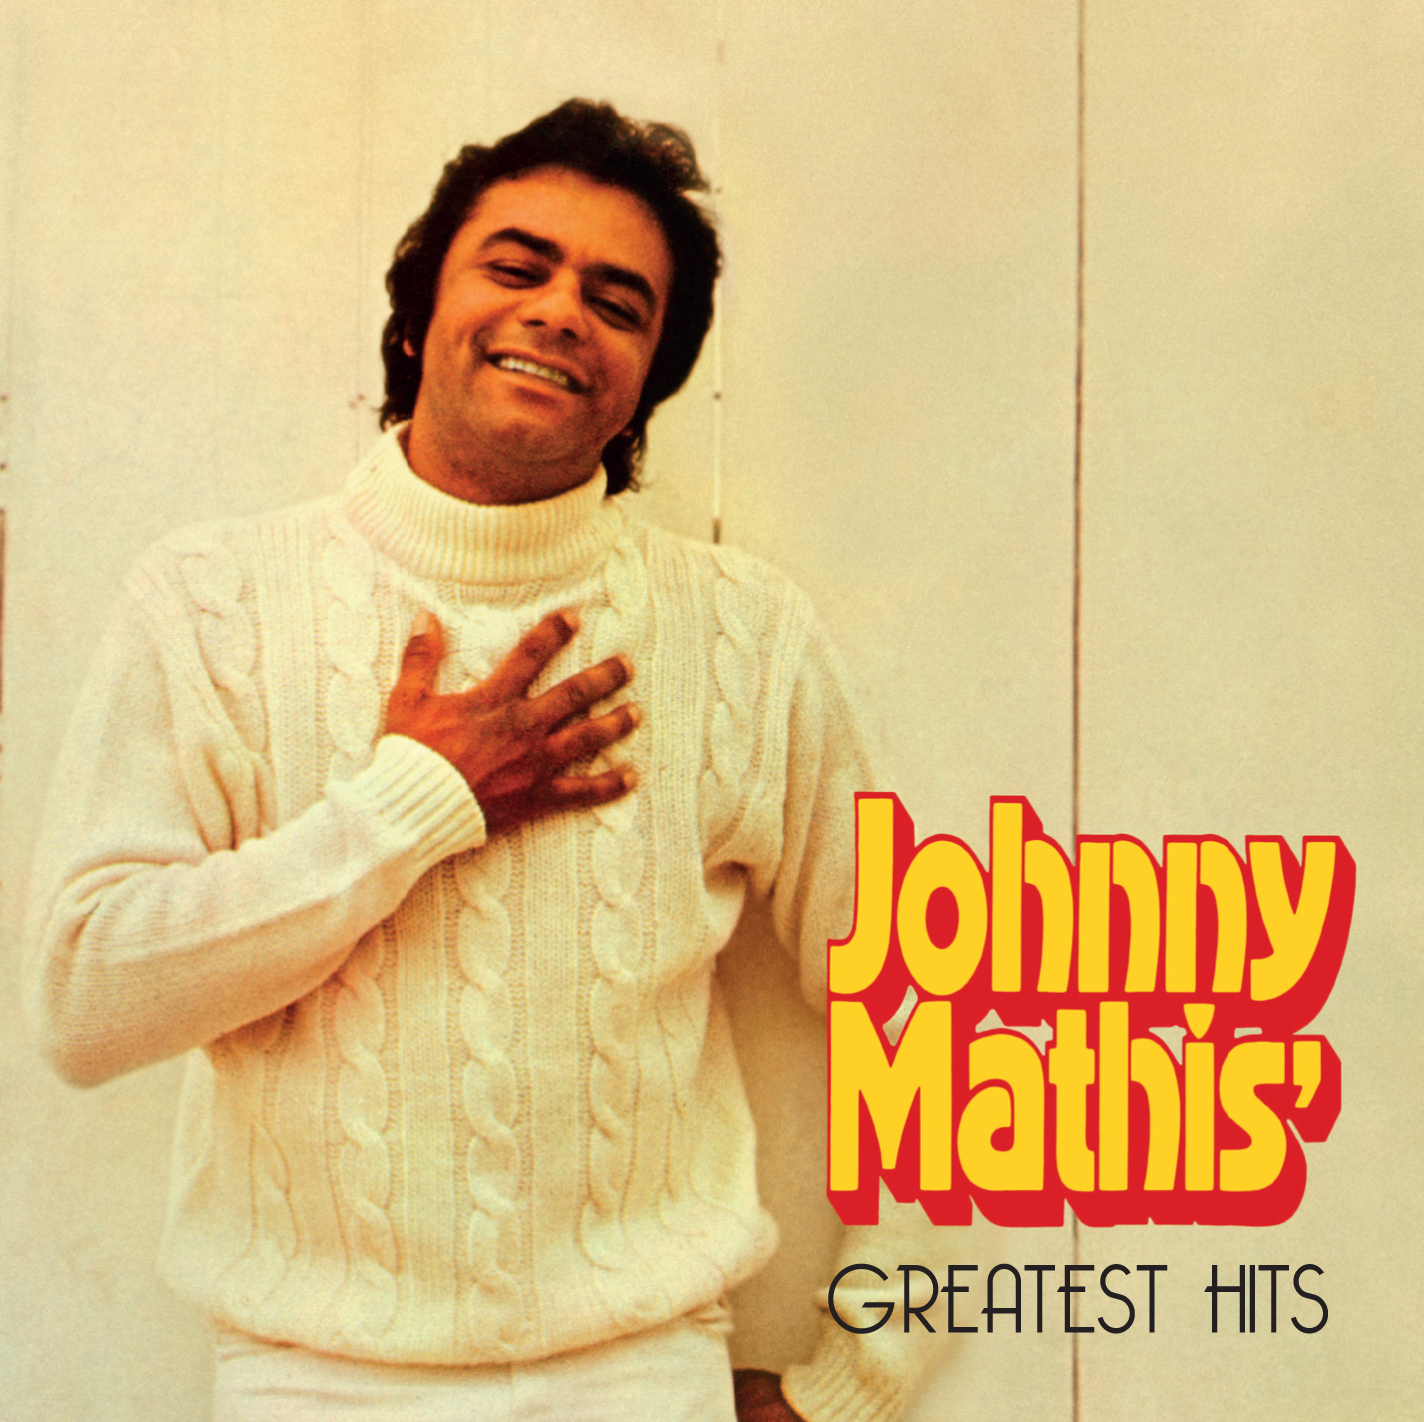 CD Johnny Mathis' Greatest Hits, de Johnny Mathis